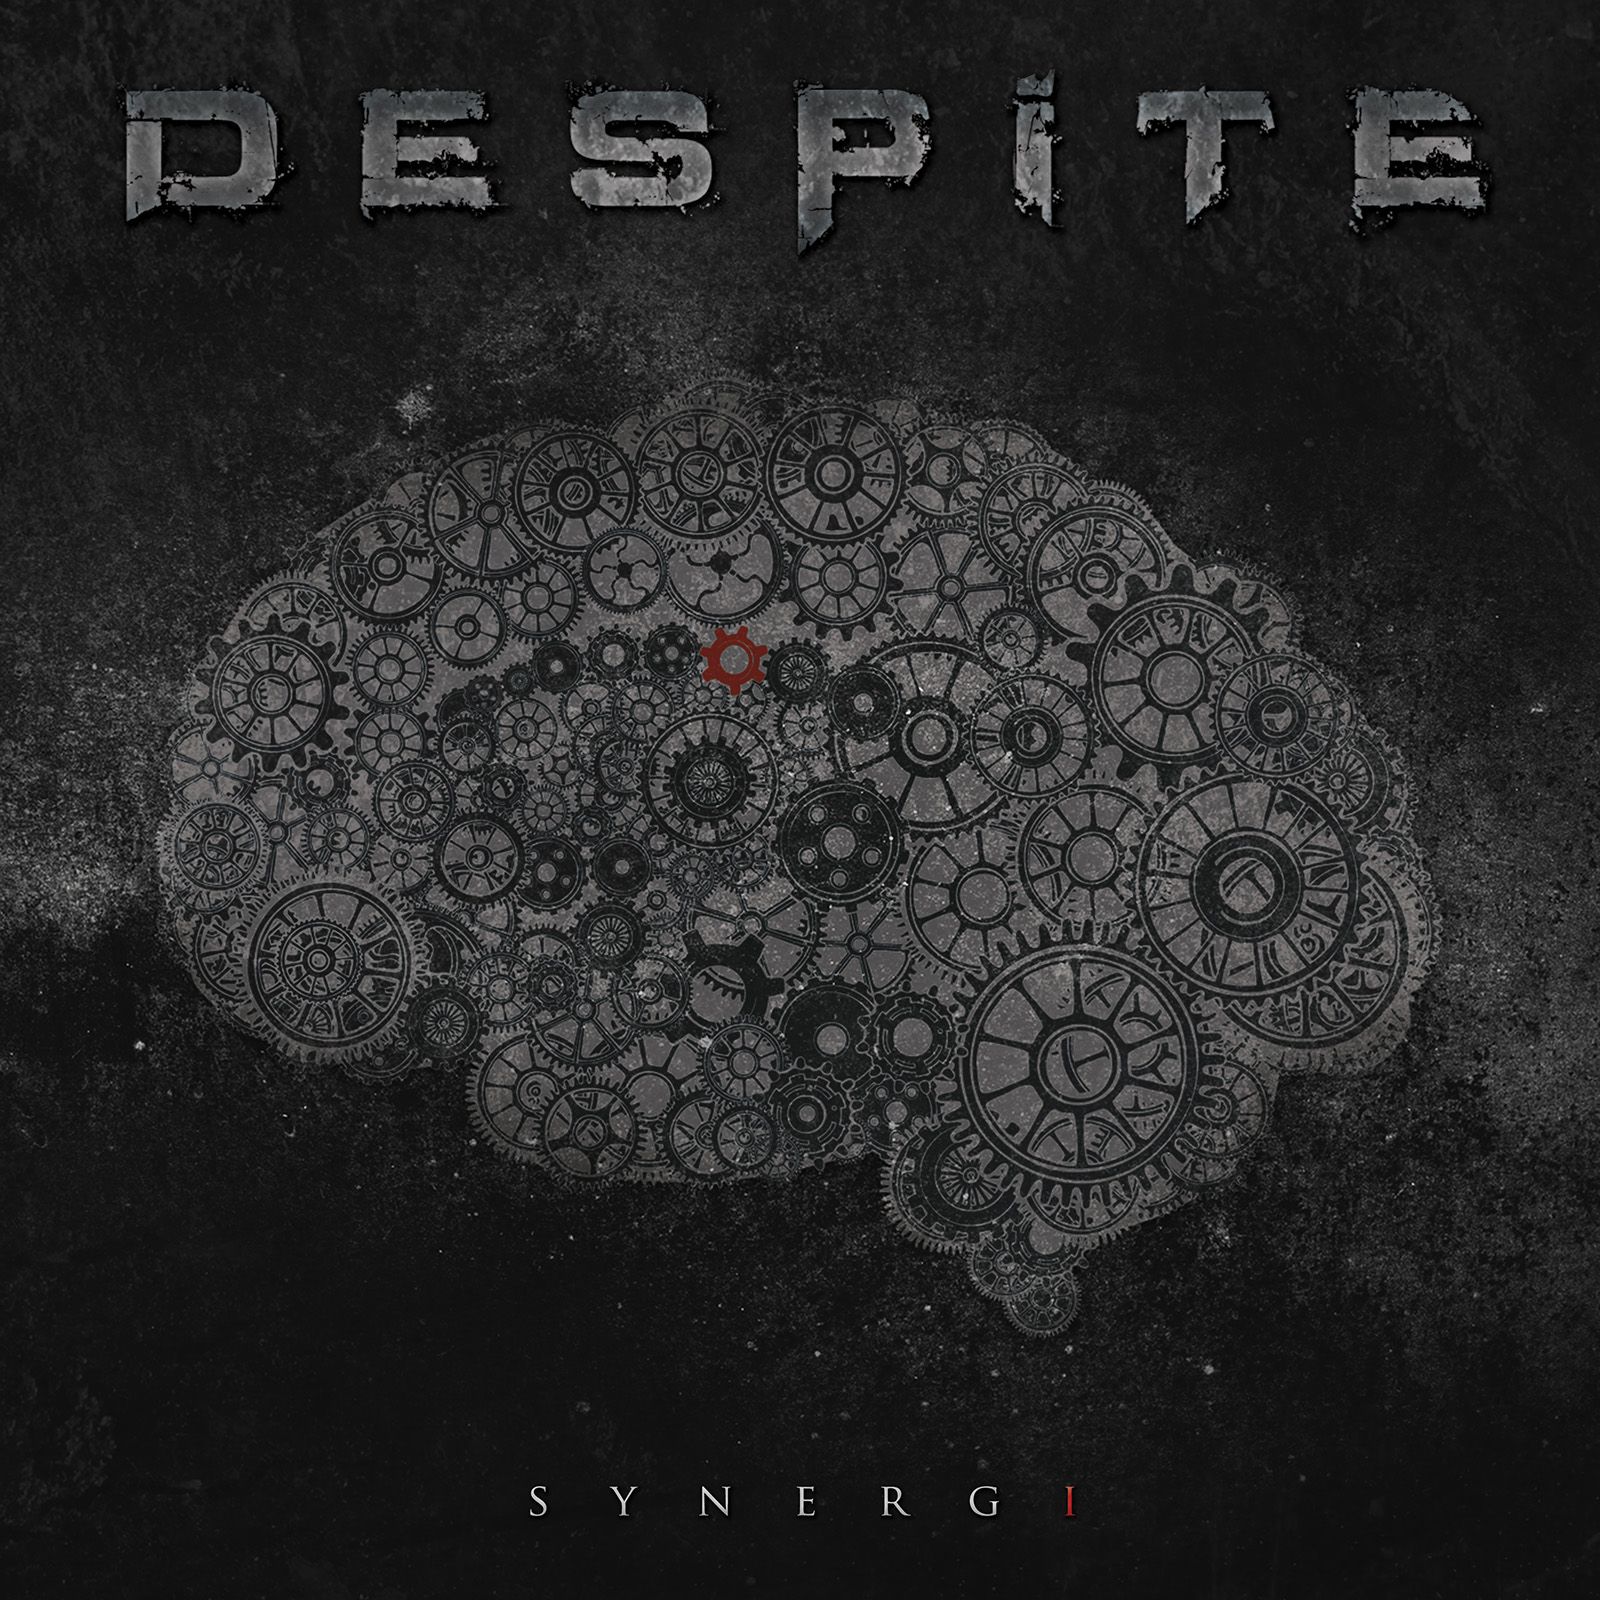 Synergi by Despite - stream or download music, buy compact disc and merchandise, connect with the band and discover more metal music at Eclipse Records